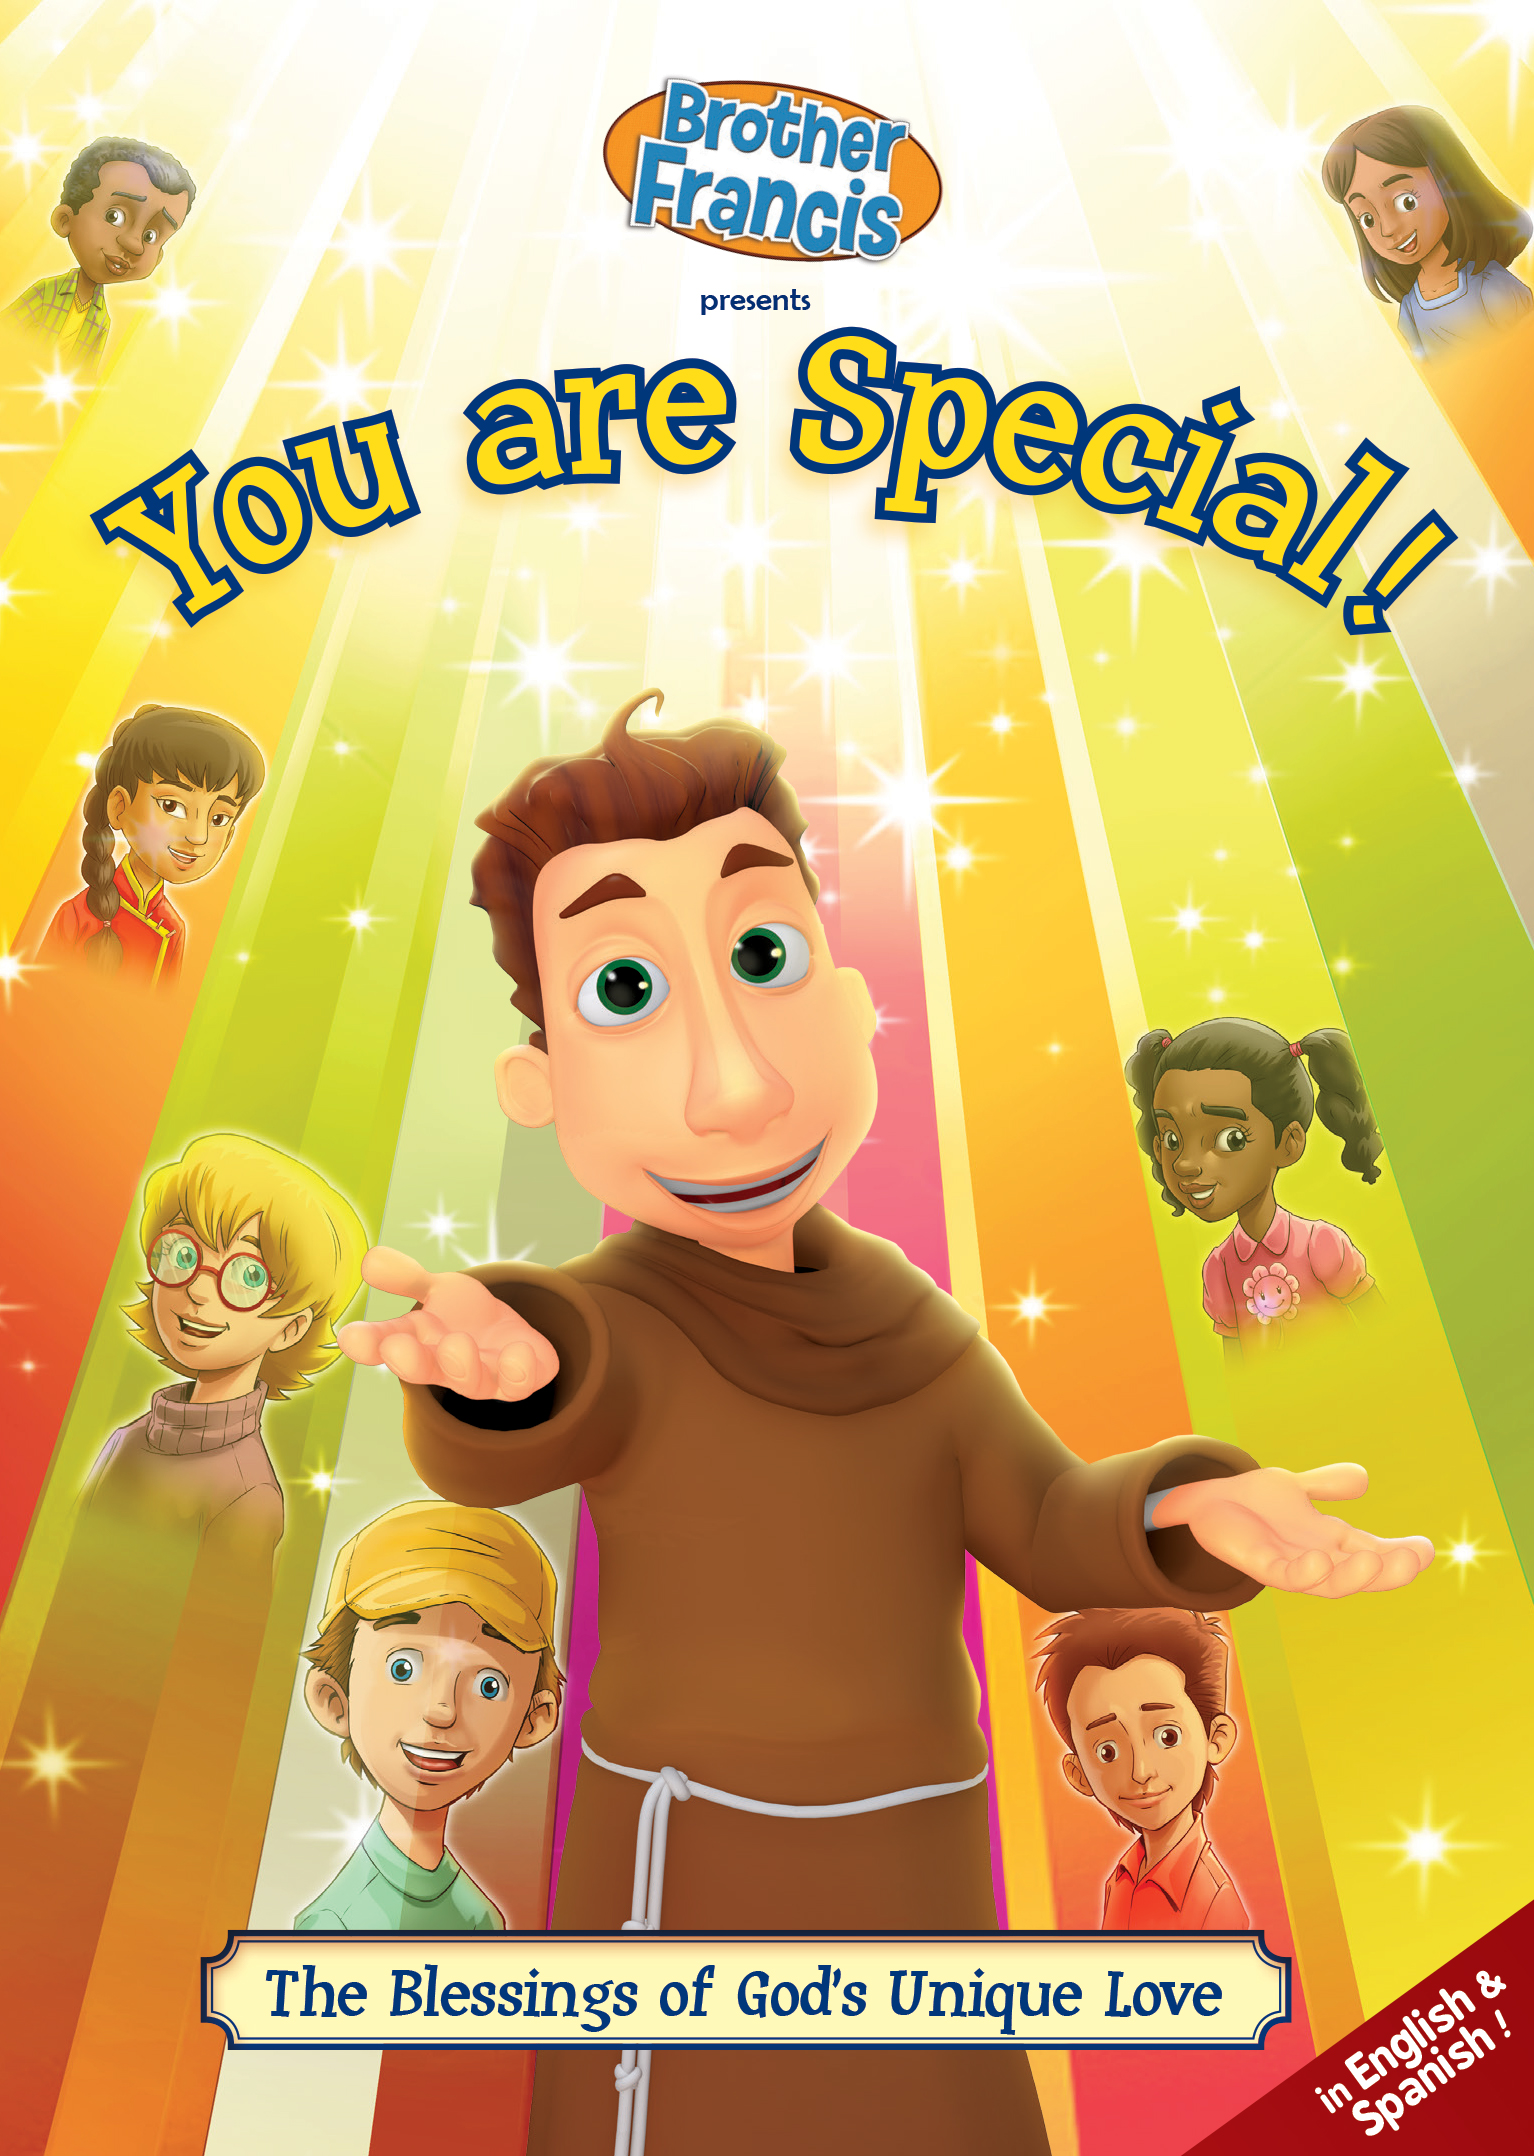 Brother Francis episode 15: You Are Special